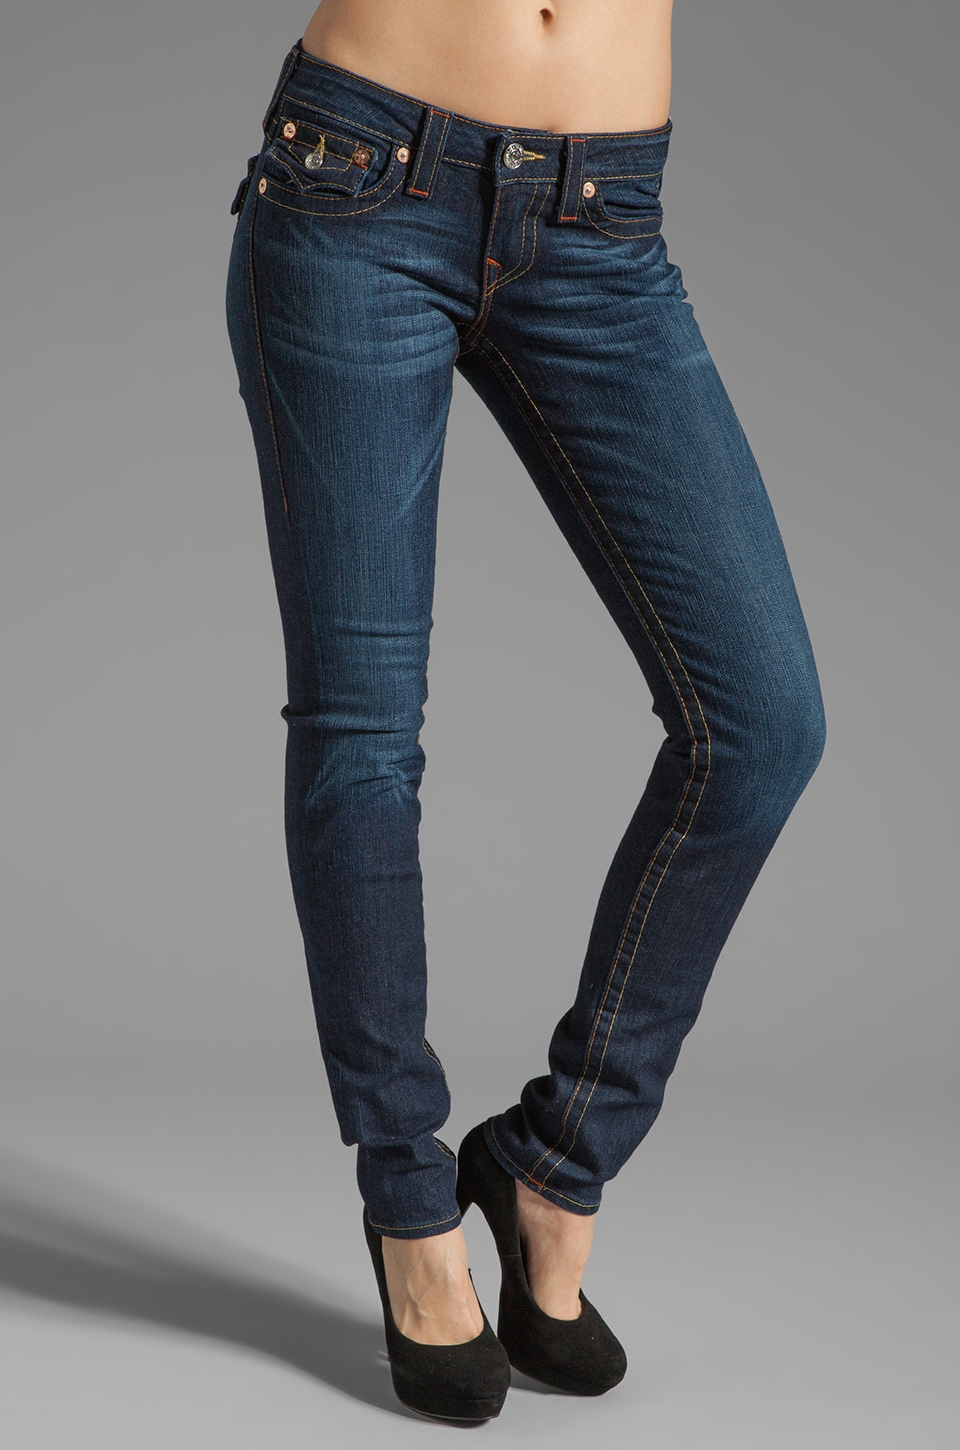 True Religion Julie Lower Rise Skinny in Dark Pony Express